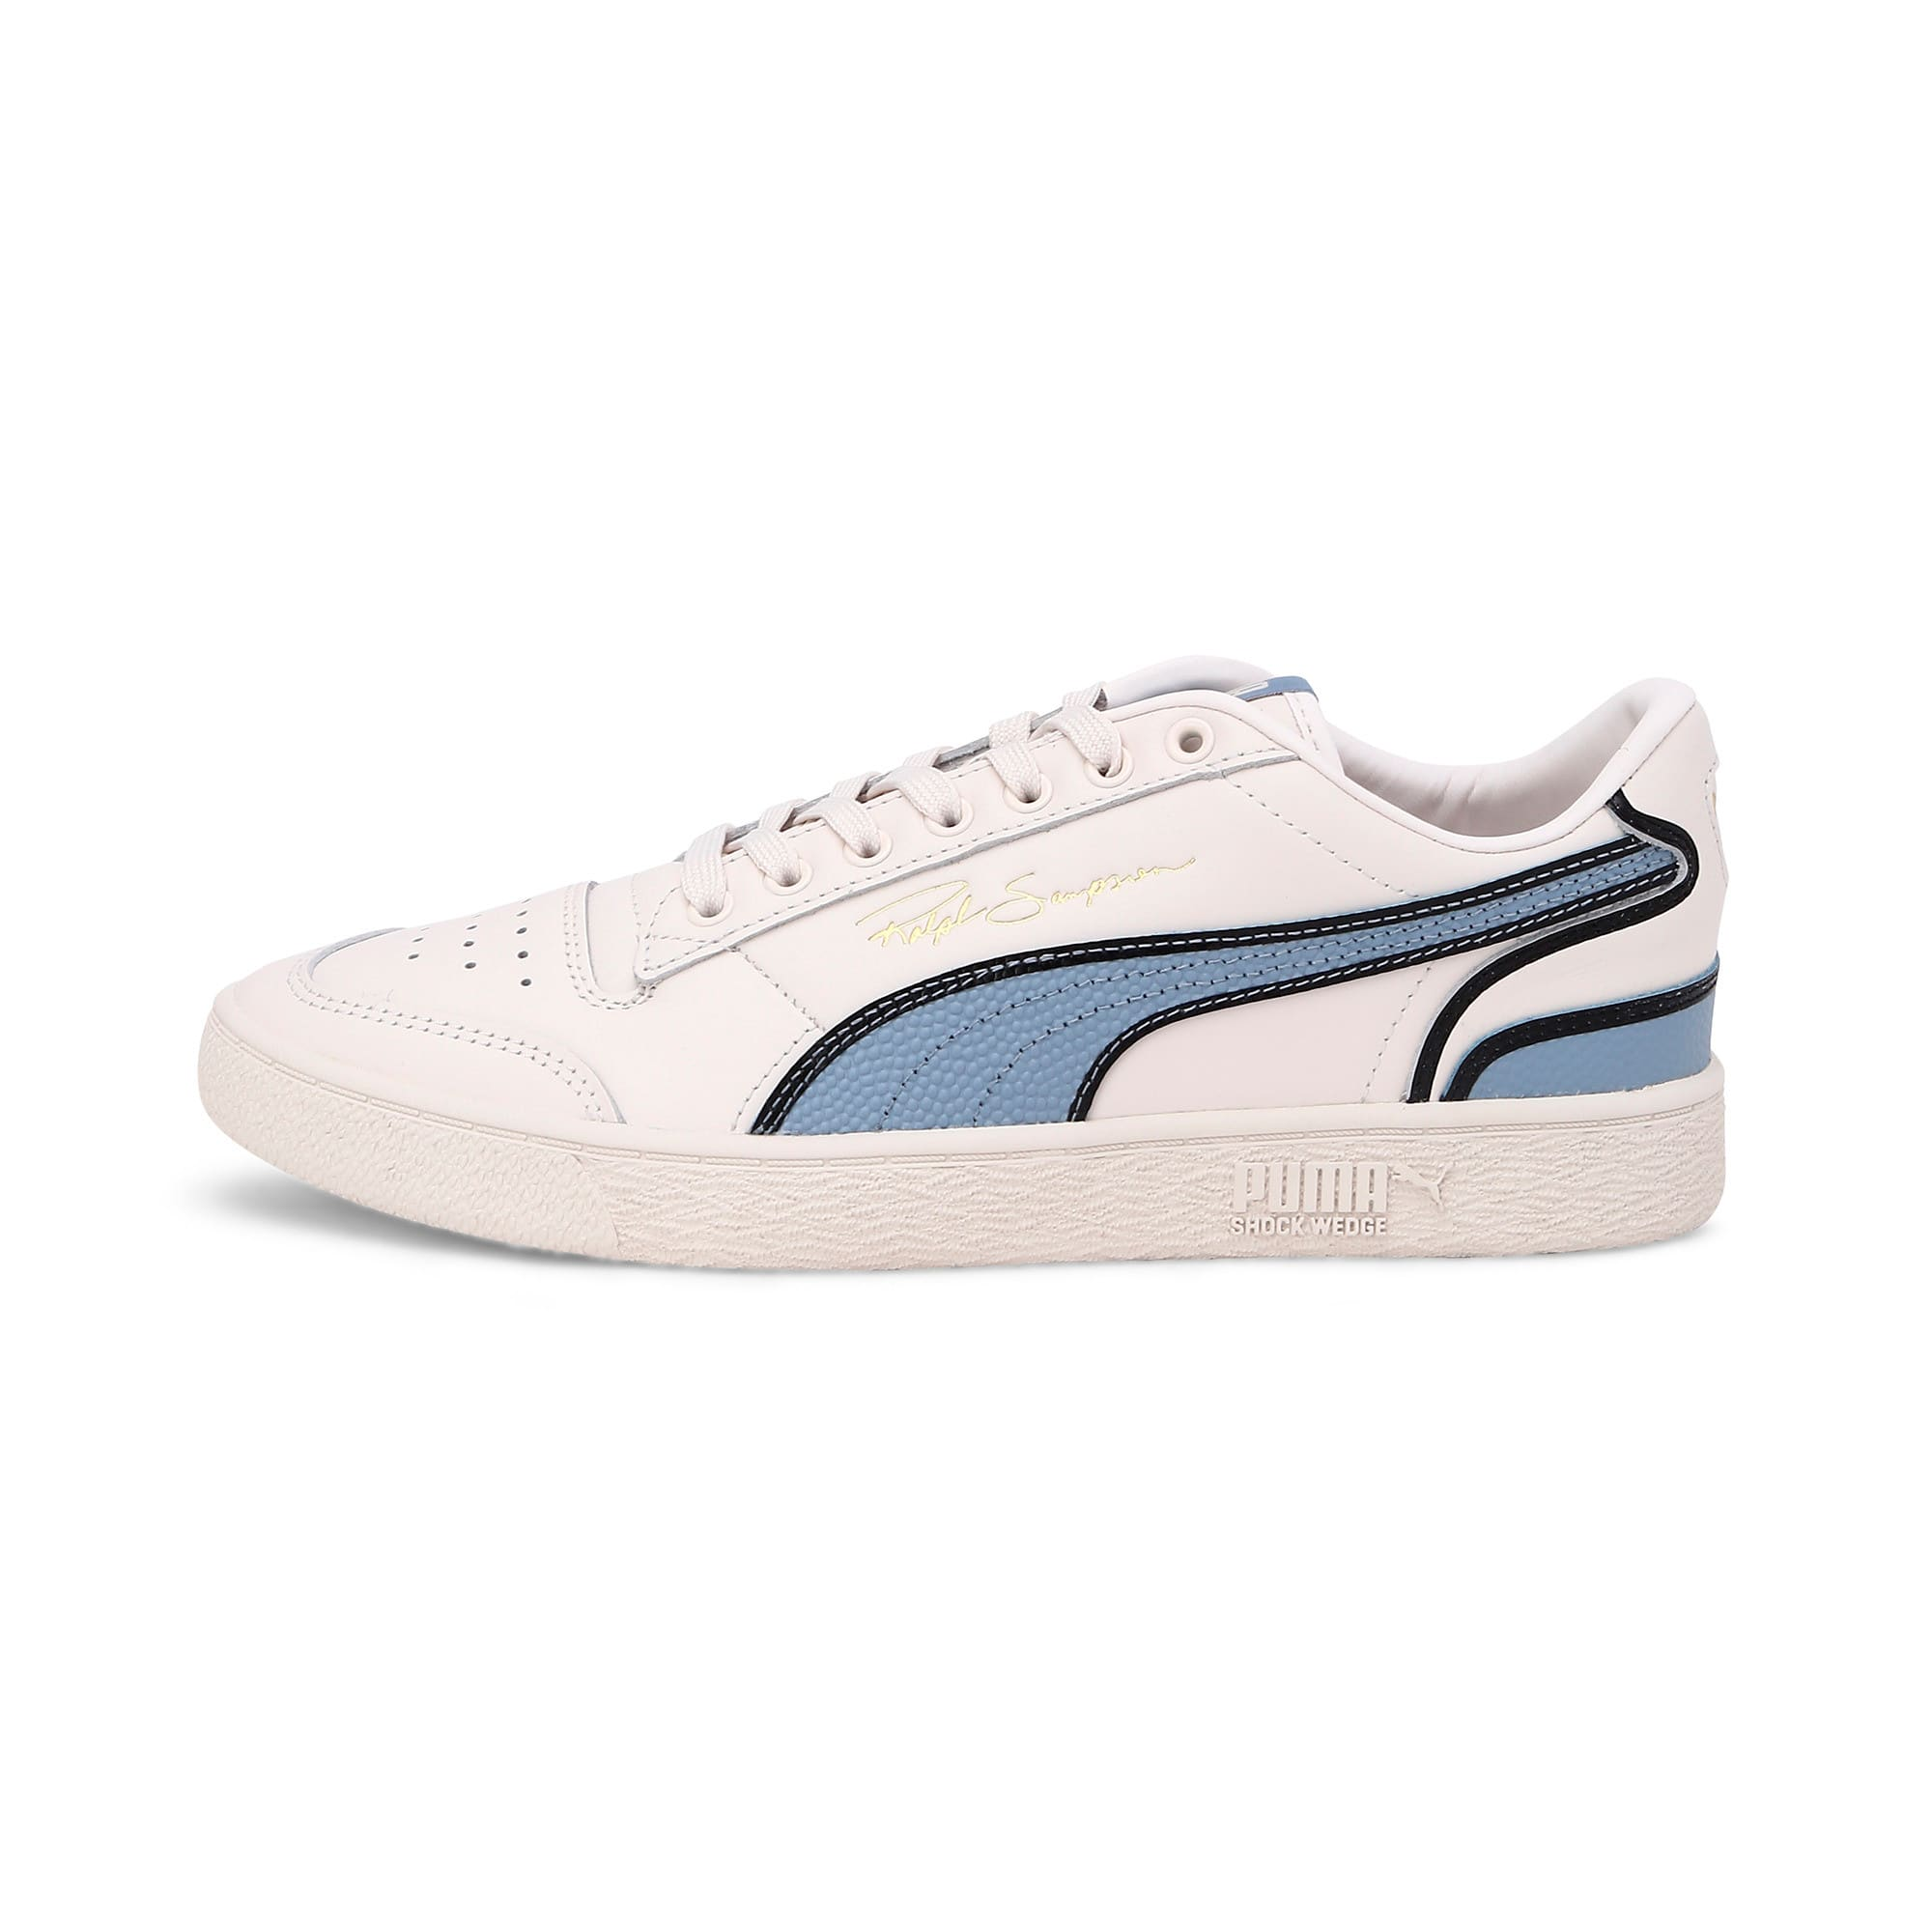 Thumbnail 1 of Ralph Sampson Lo Hoops Trainers, Pastel-Faded Denim-Pastel, medium-IND